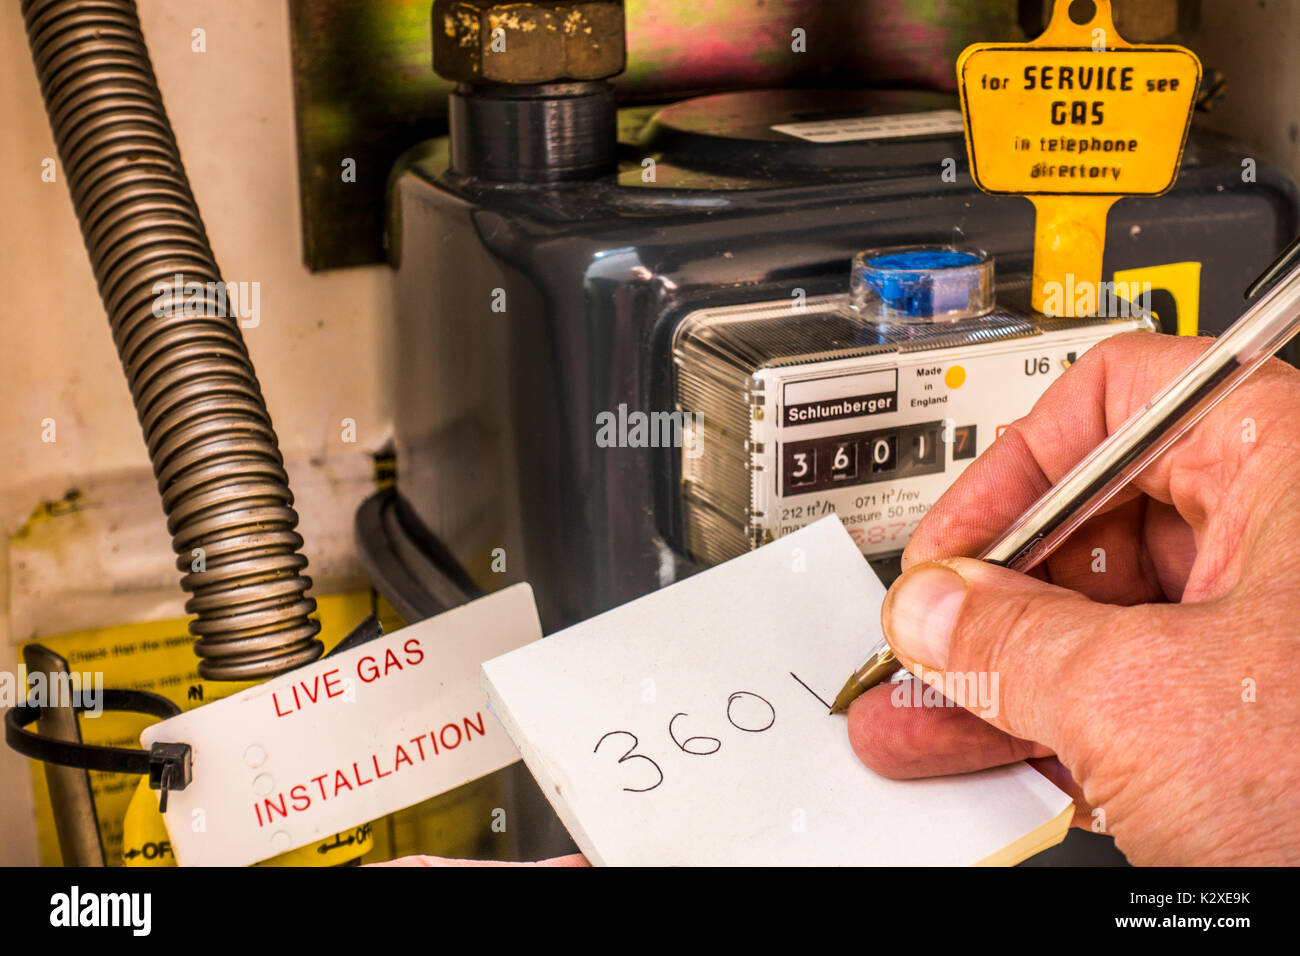 Inside a gas meter cupboard with a yellow key on top of the sealed meter, and a man's hand writing down the consumption reading. England, UK. - Stock Image